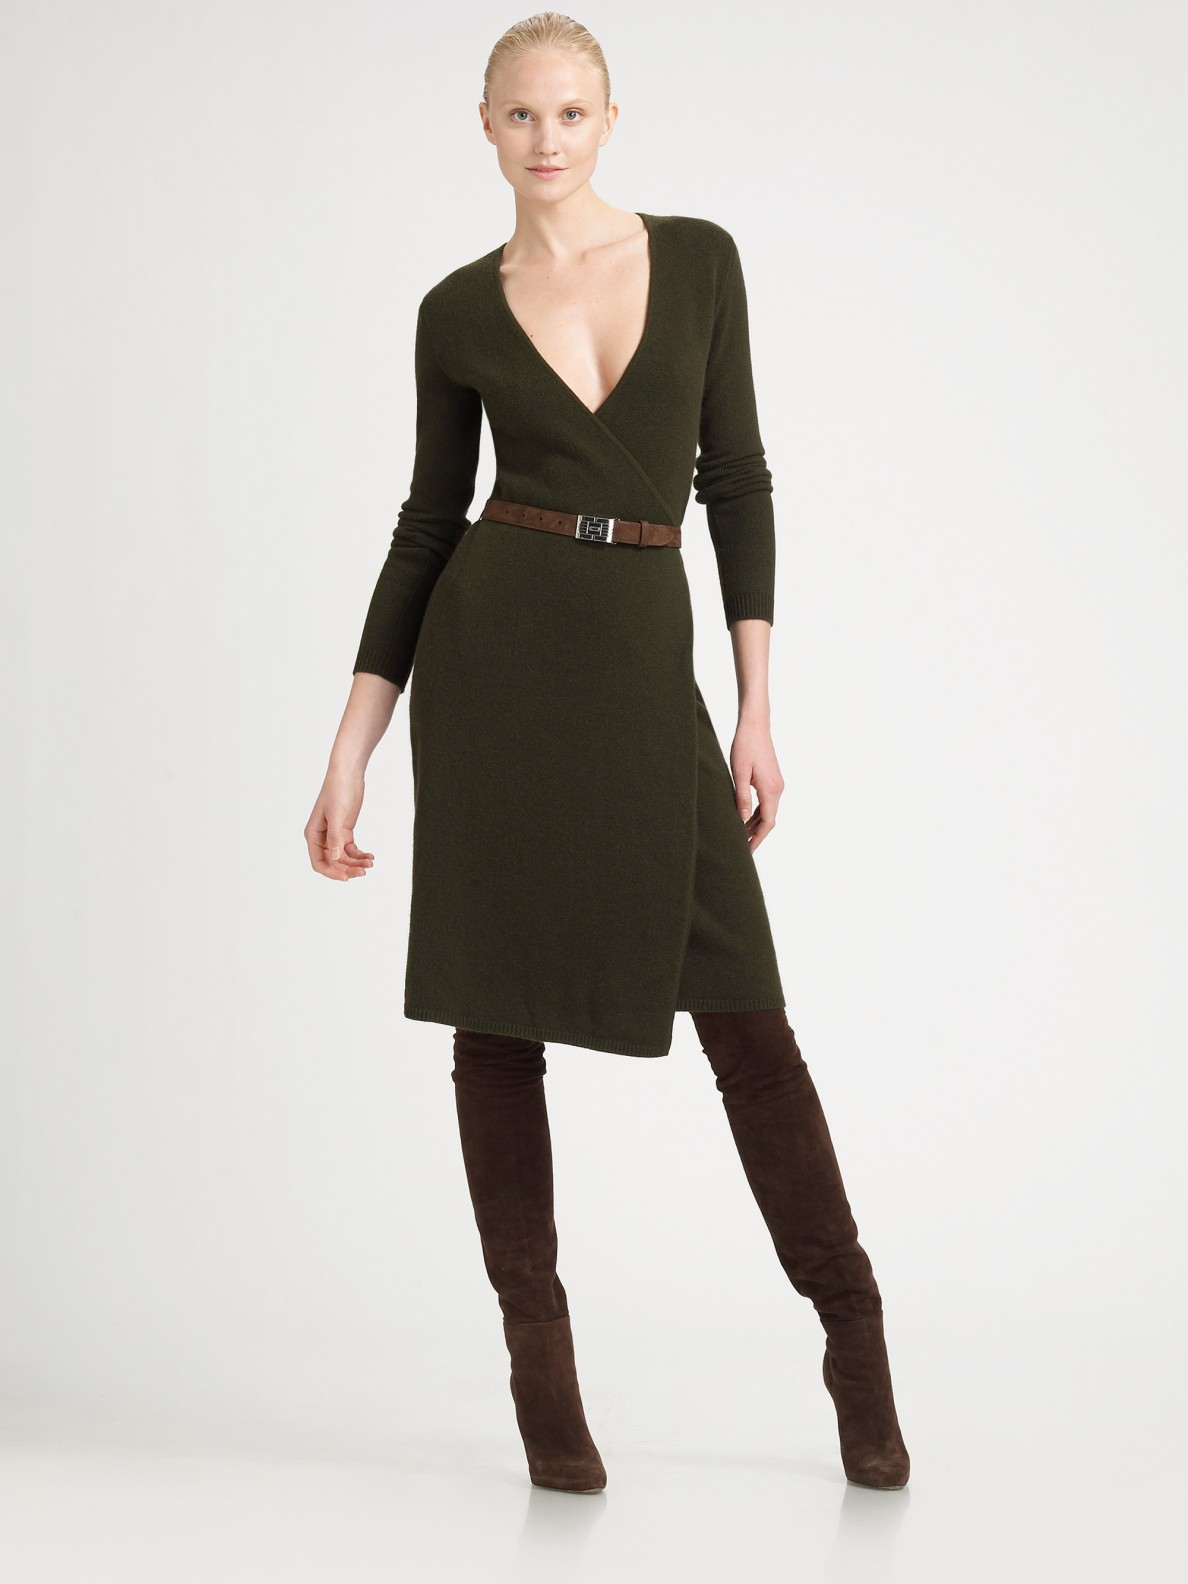 Ralph lauren black label Wrap Sweater Dress in Green | Lyst